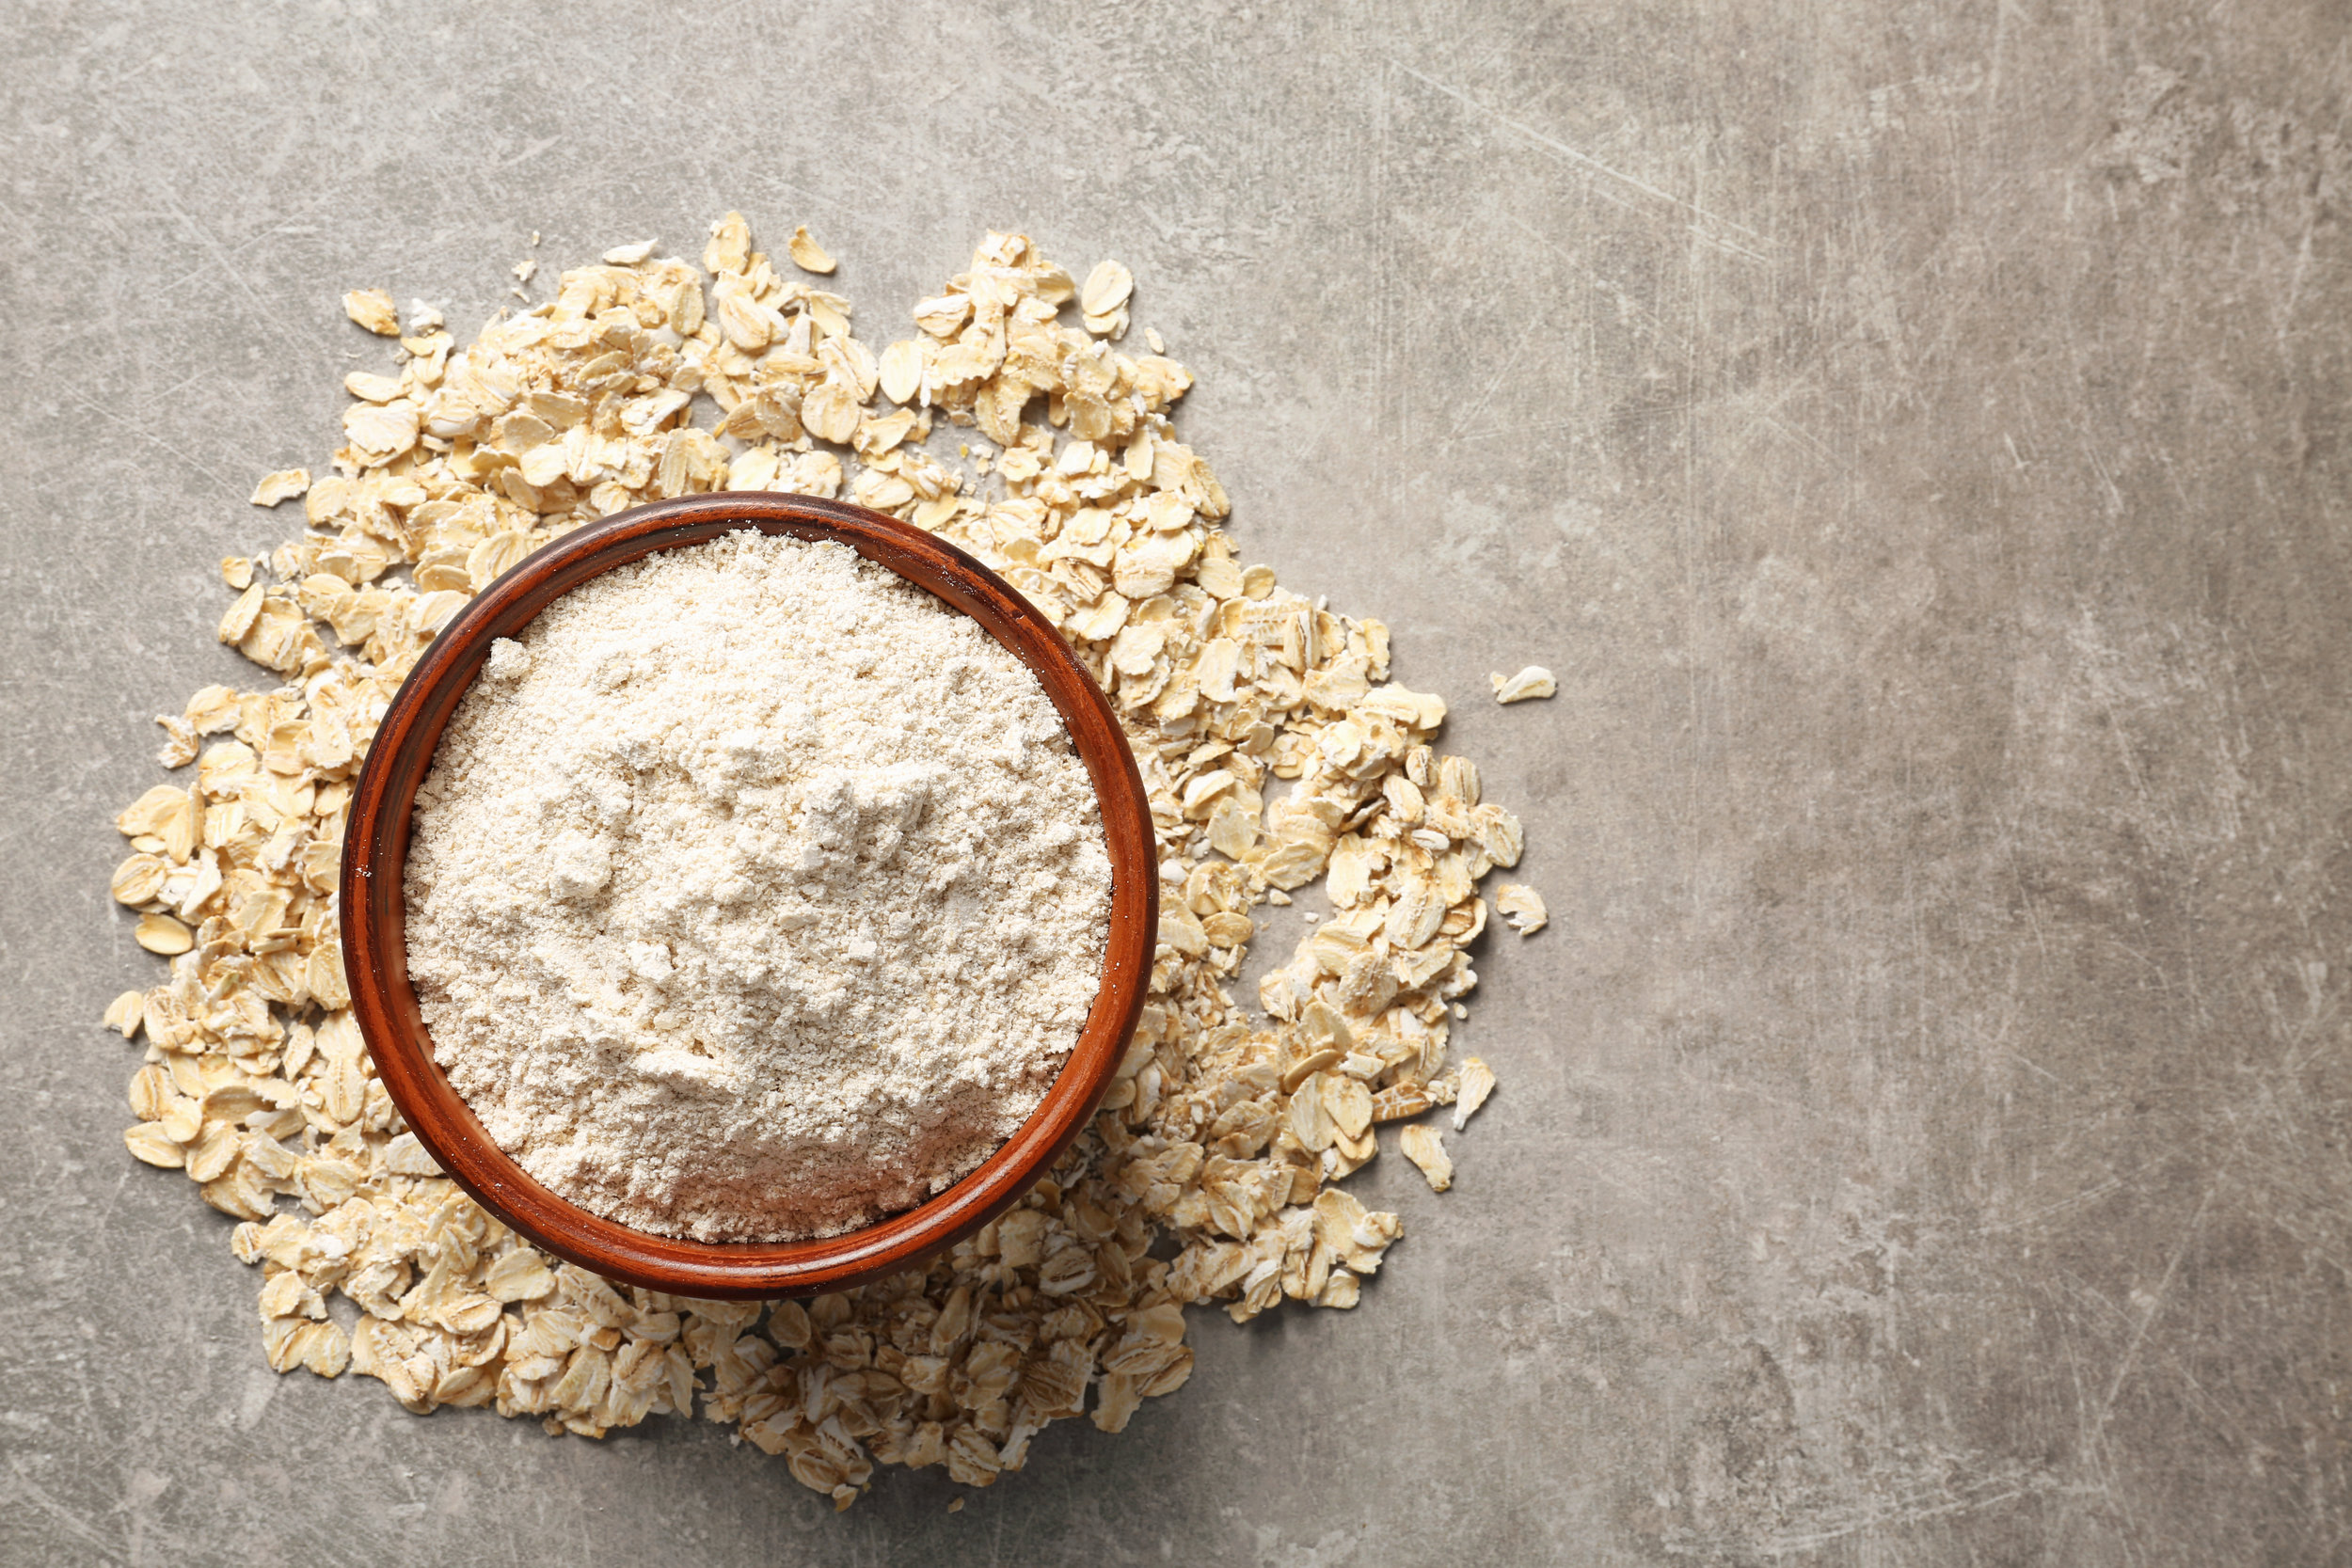 Toatal oats and pulses flour mixture - Available in 1kg, 2kg or 10kg bags.Our specialized mixture is super simple to use. Just use equal parts of Toatal oats and pulses flour and water and follow the recipe. Make your own breads, wraps, pastries, pastas and more.